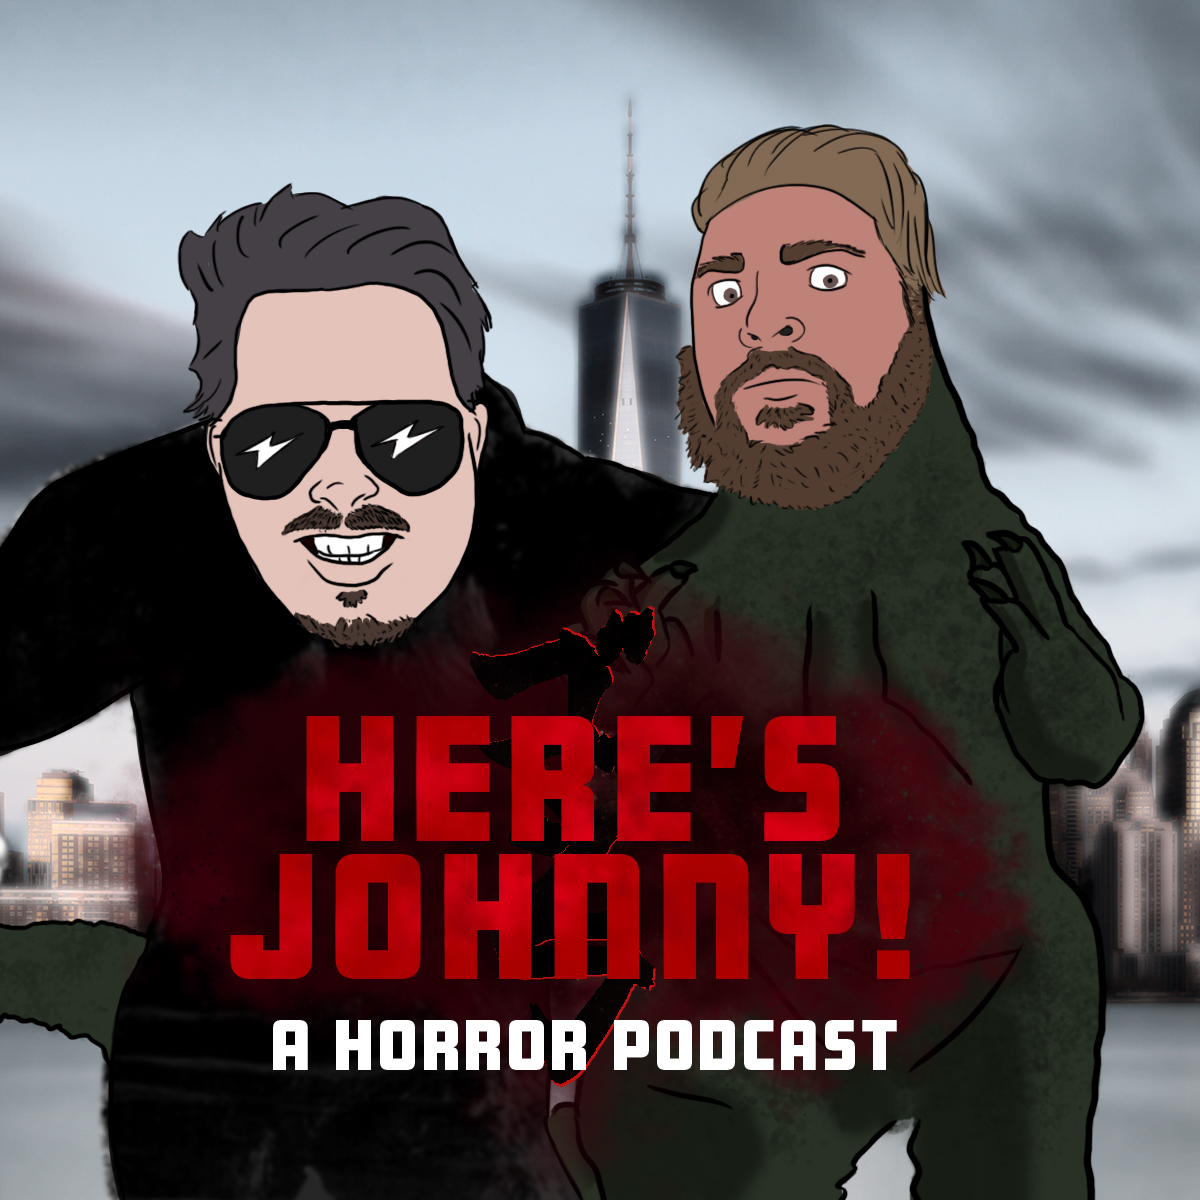 Here's Johnny! show art